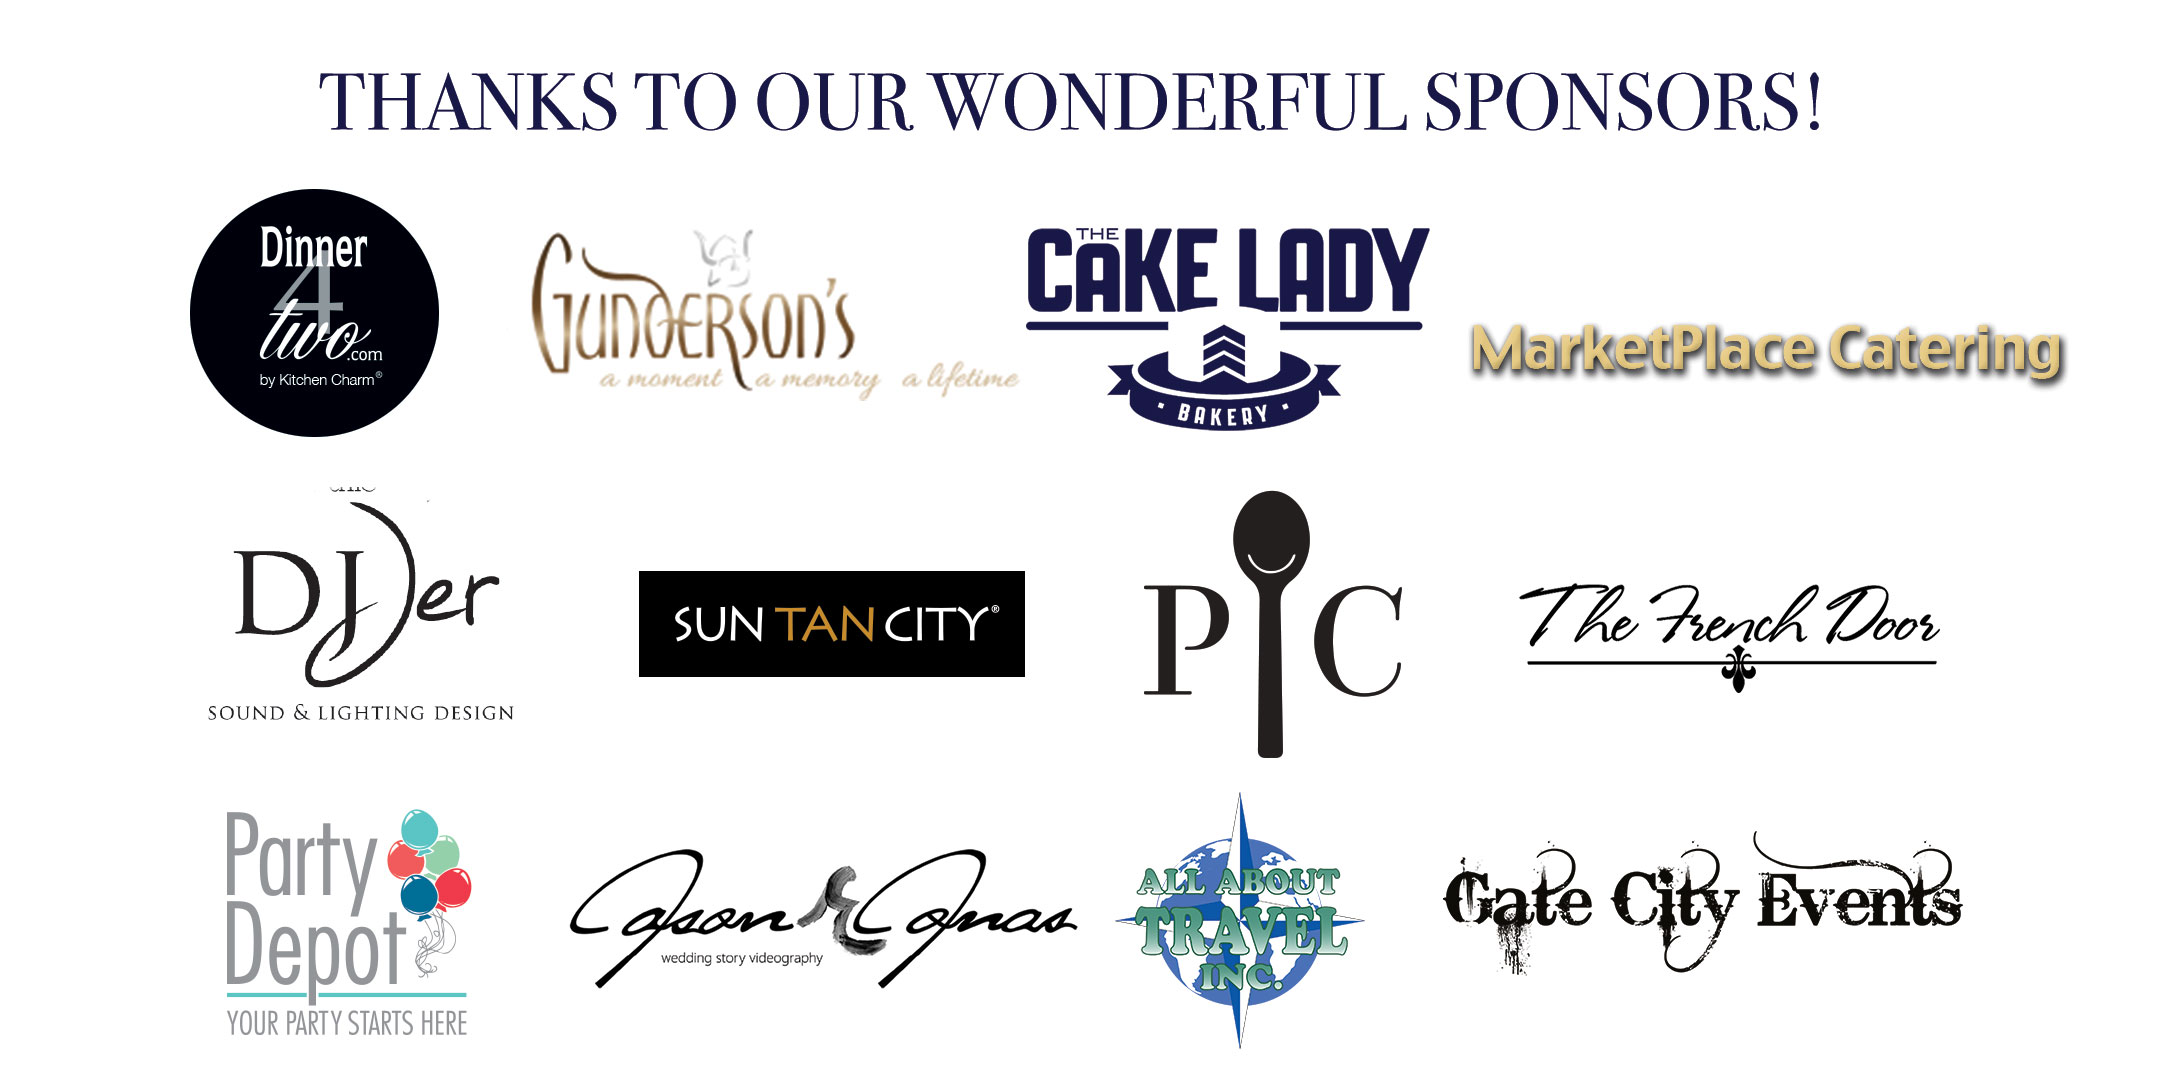 Thanks to the Sponsors of our event